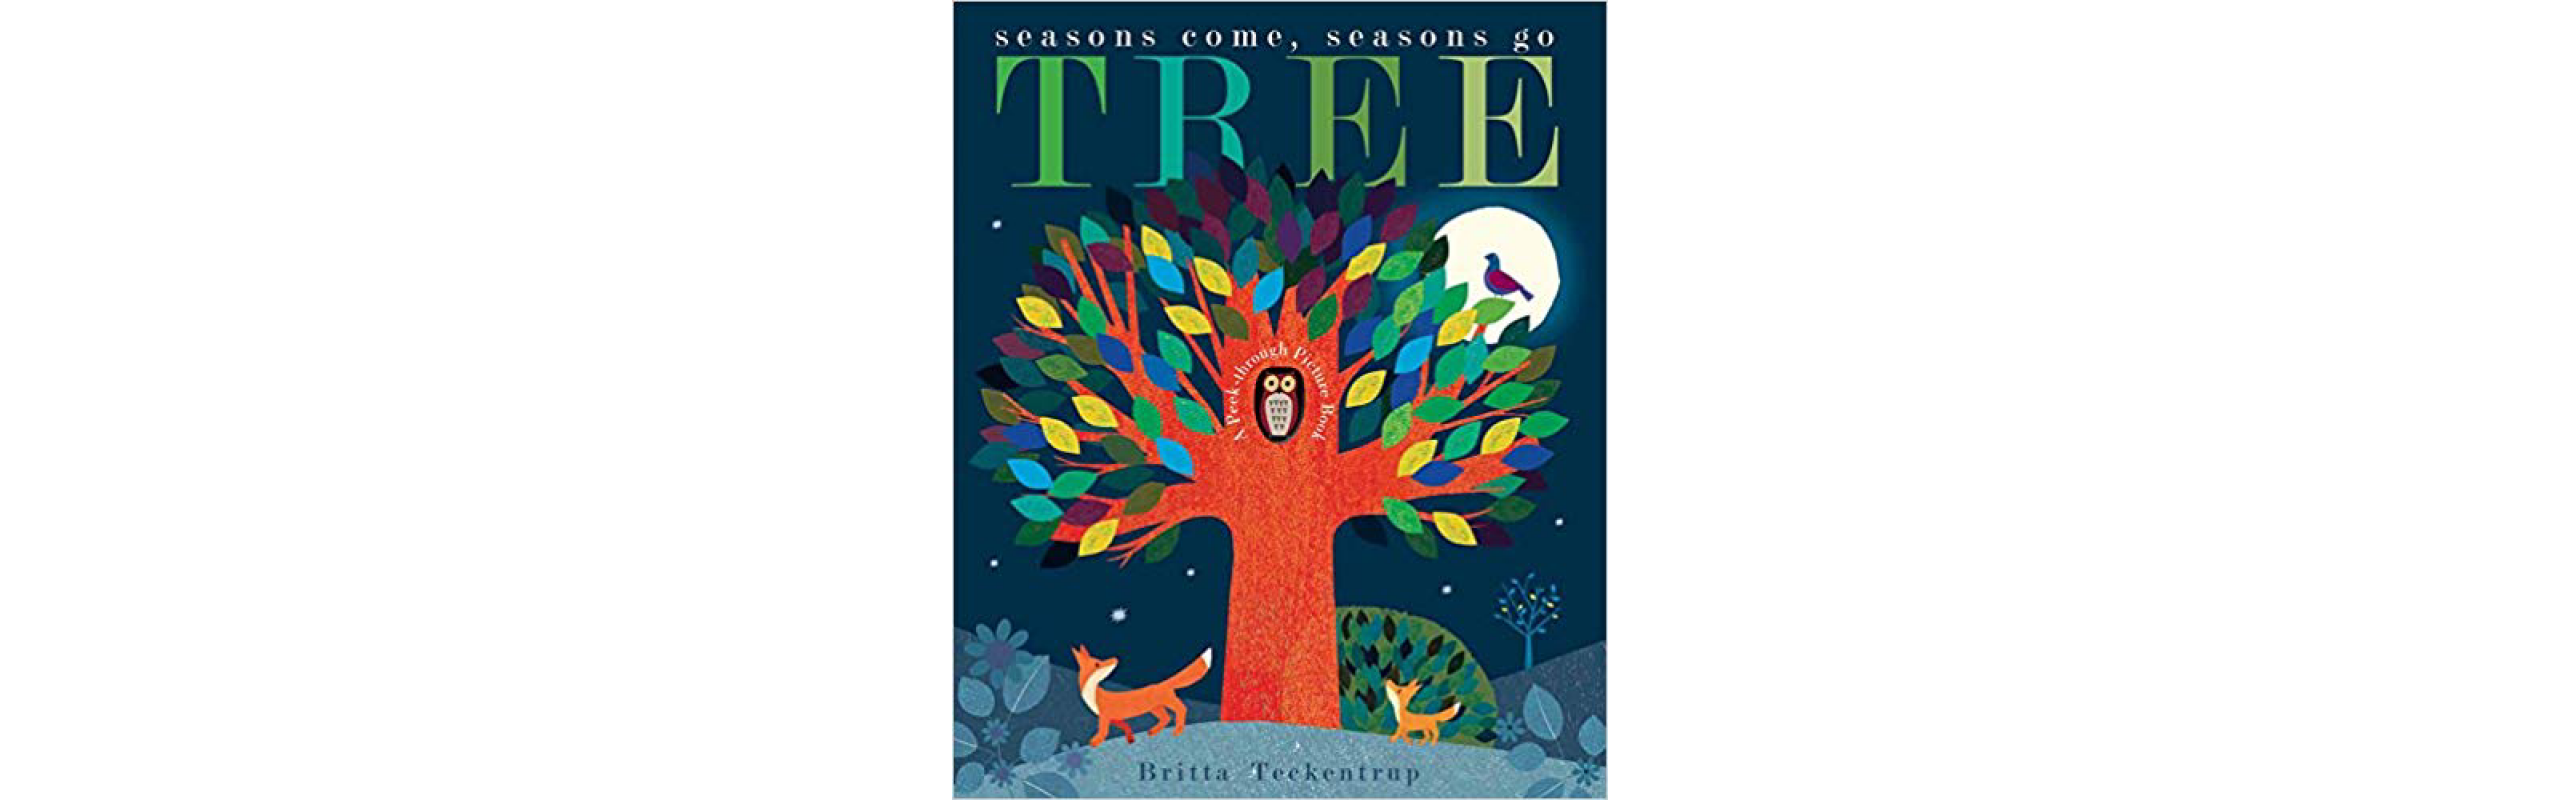 It's Storytime! TREE